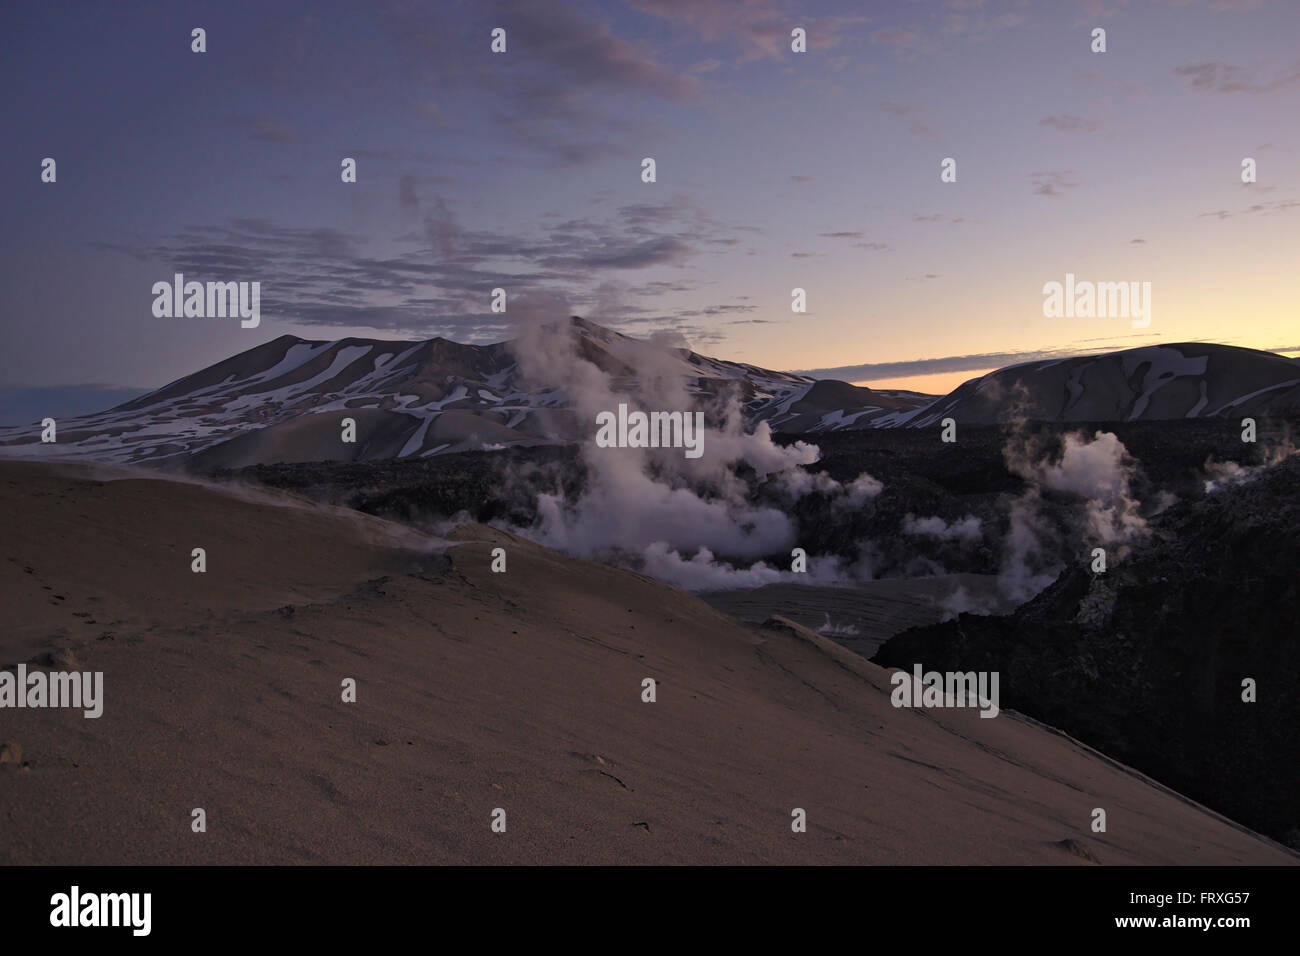 Fumaroles and lava flow in Cordon Caulle, Puyehue in the back, dusk, Chile - Stock Image